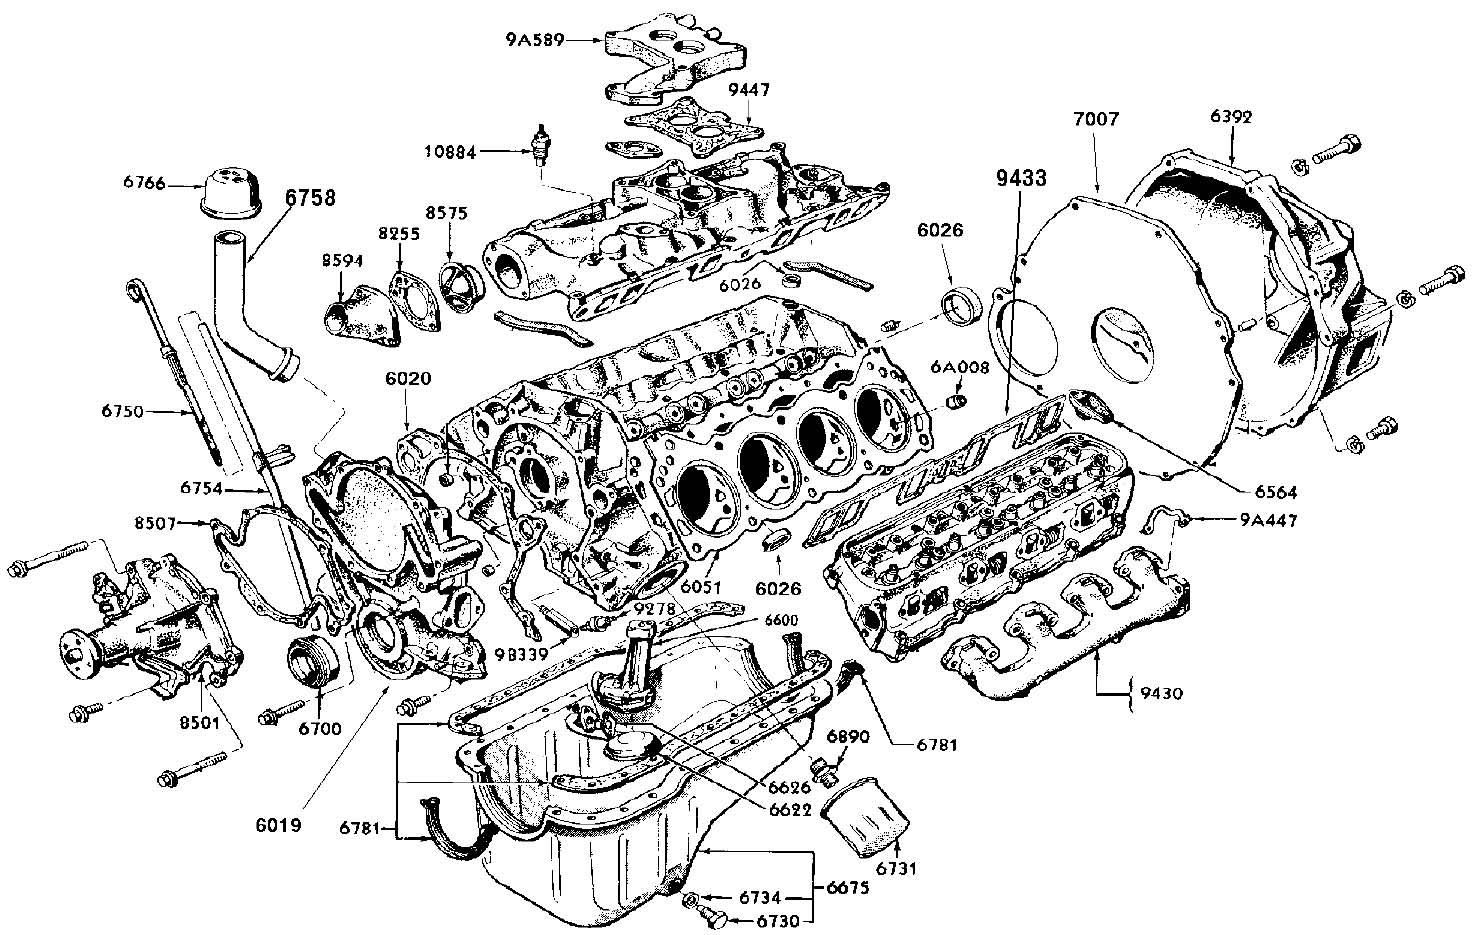 Ford Engine Diagram : Ford f vacuum diagram html imageresizertool